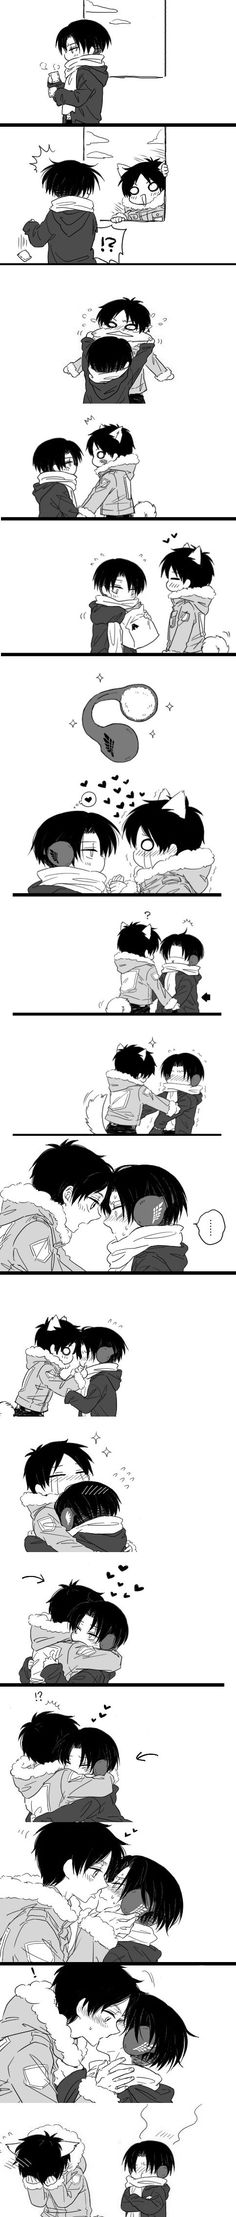 "Shingeki no Kyojin {Attack on Titan} (Yaoi) - Rivaille ""Levi"" Ackerman x Eren Jaeger - [EreRi] Don't ship them, but this is cute Ereri, Attack On Titan Ships, Attack On Titan Levi, Levi Ackerman, Snk Fanfiction, Cosplay Meme, Eren E Levi, Kaichou Wa Maid Sama, Kawaii"